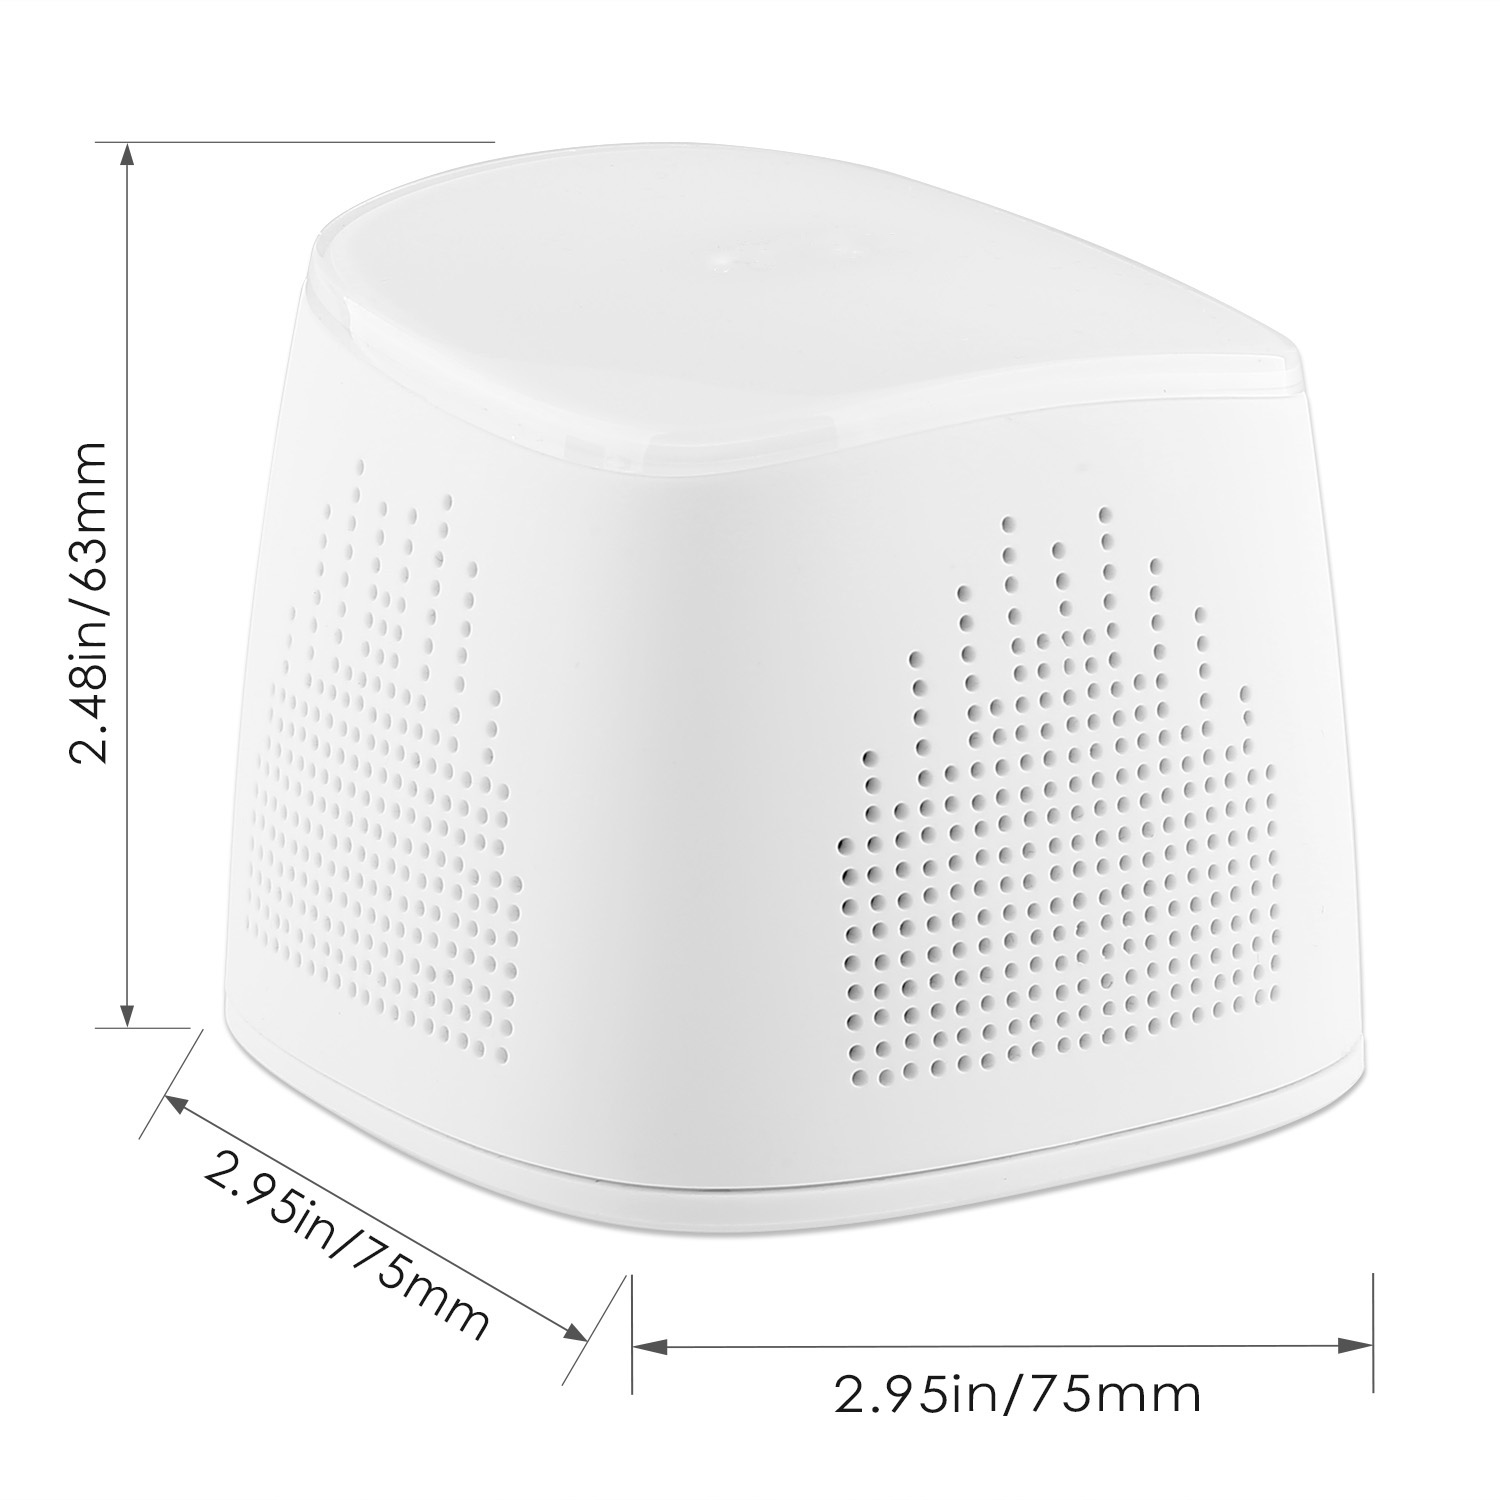 firefly BT021Wireless Portable Bluetooth Speaker with 2000 mAh Power Bank - White 9